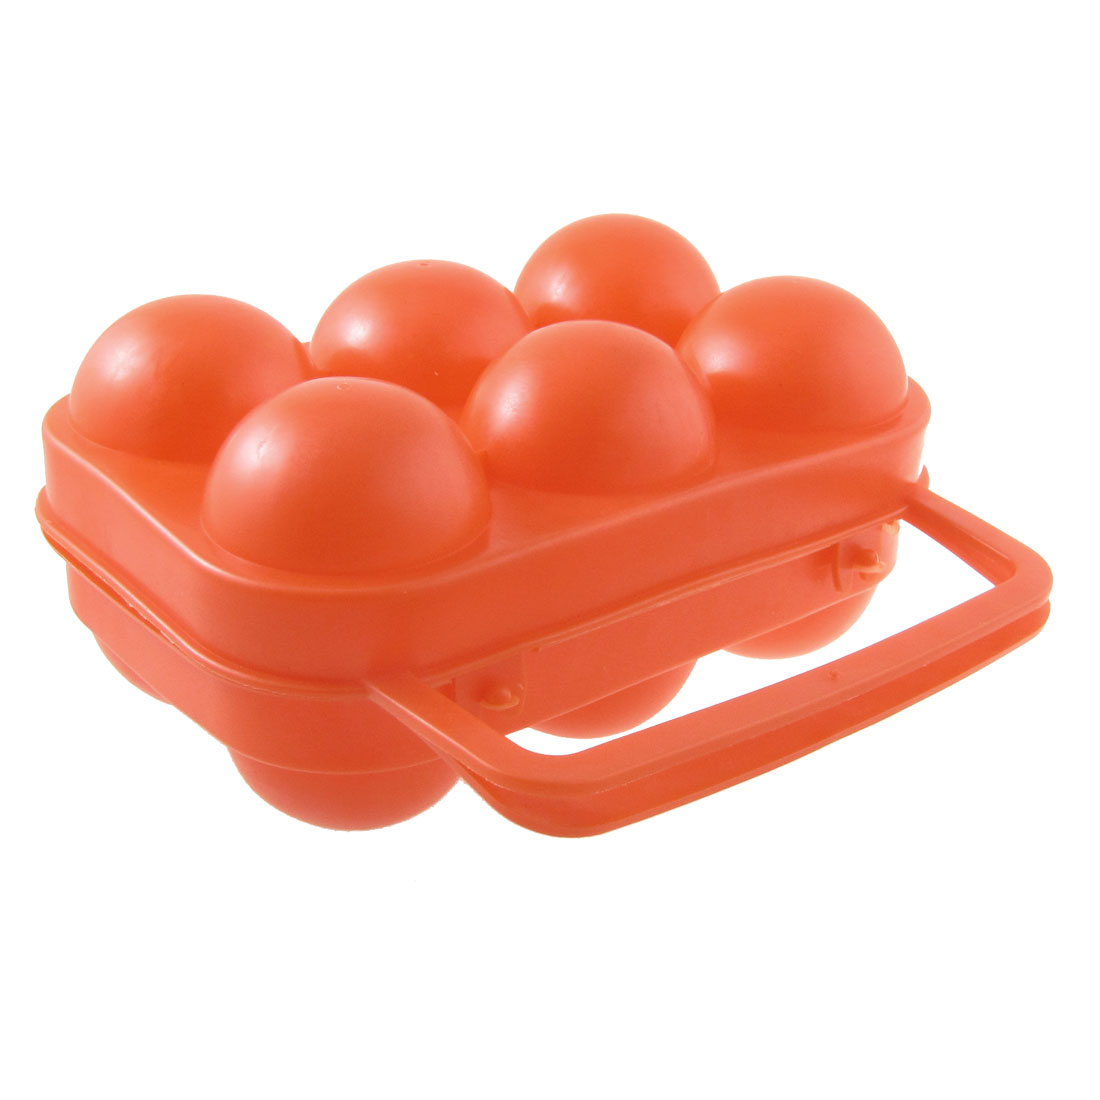 Outdoor Camping Orange Red Folding Plastic Egg Tray Box Case